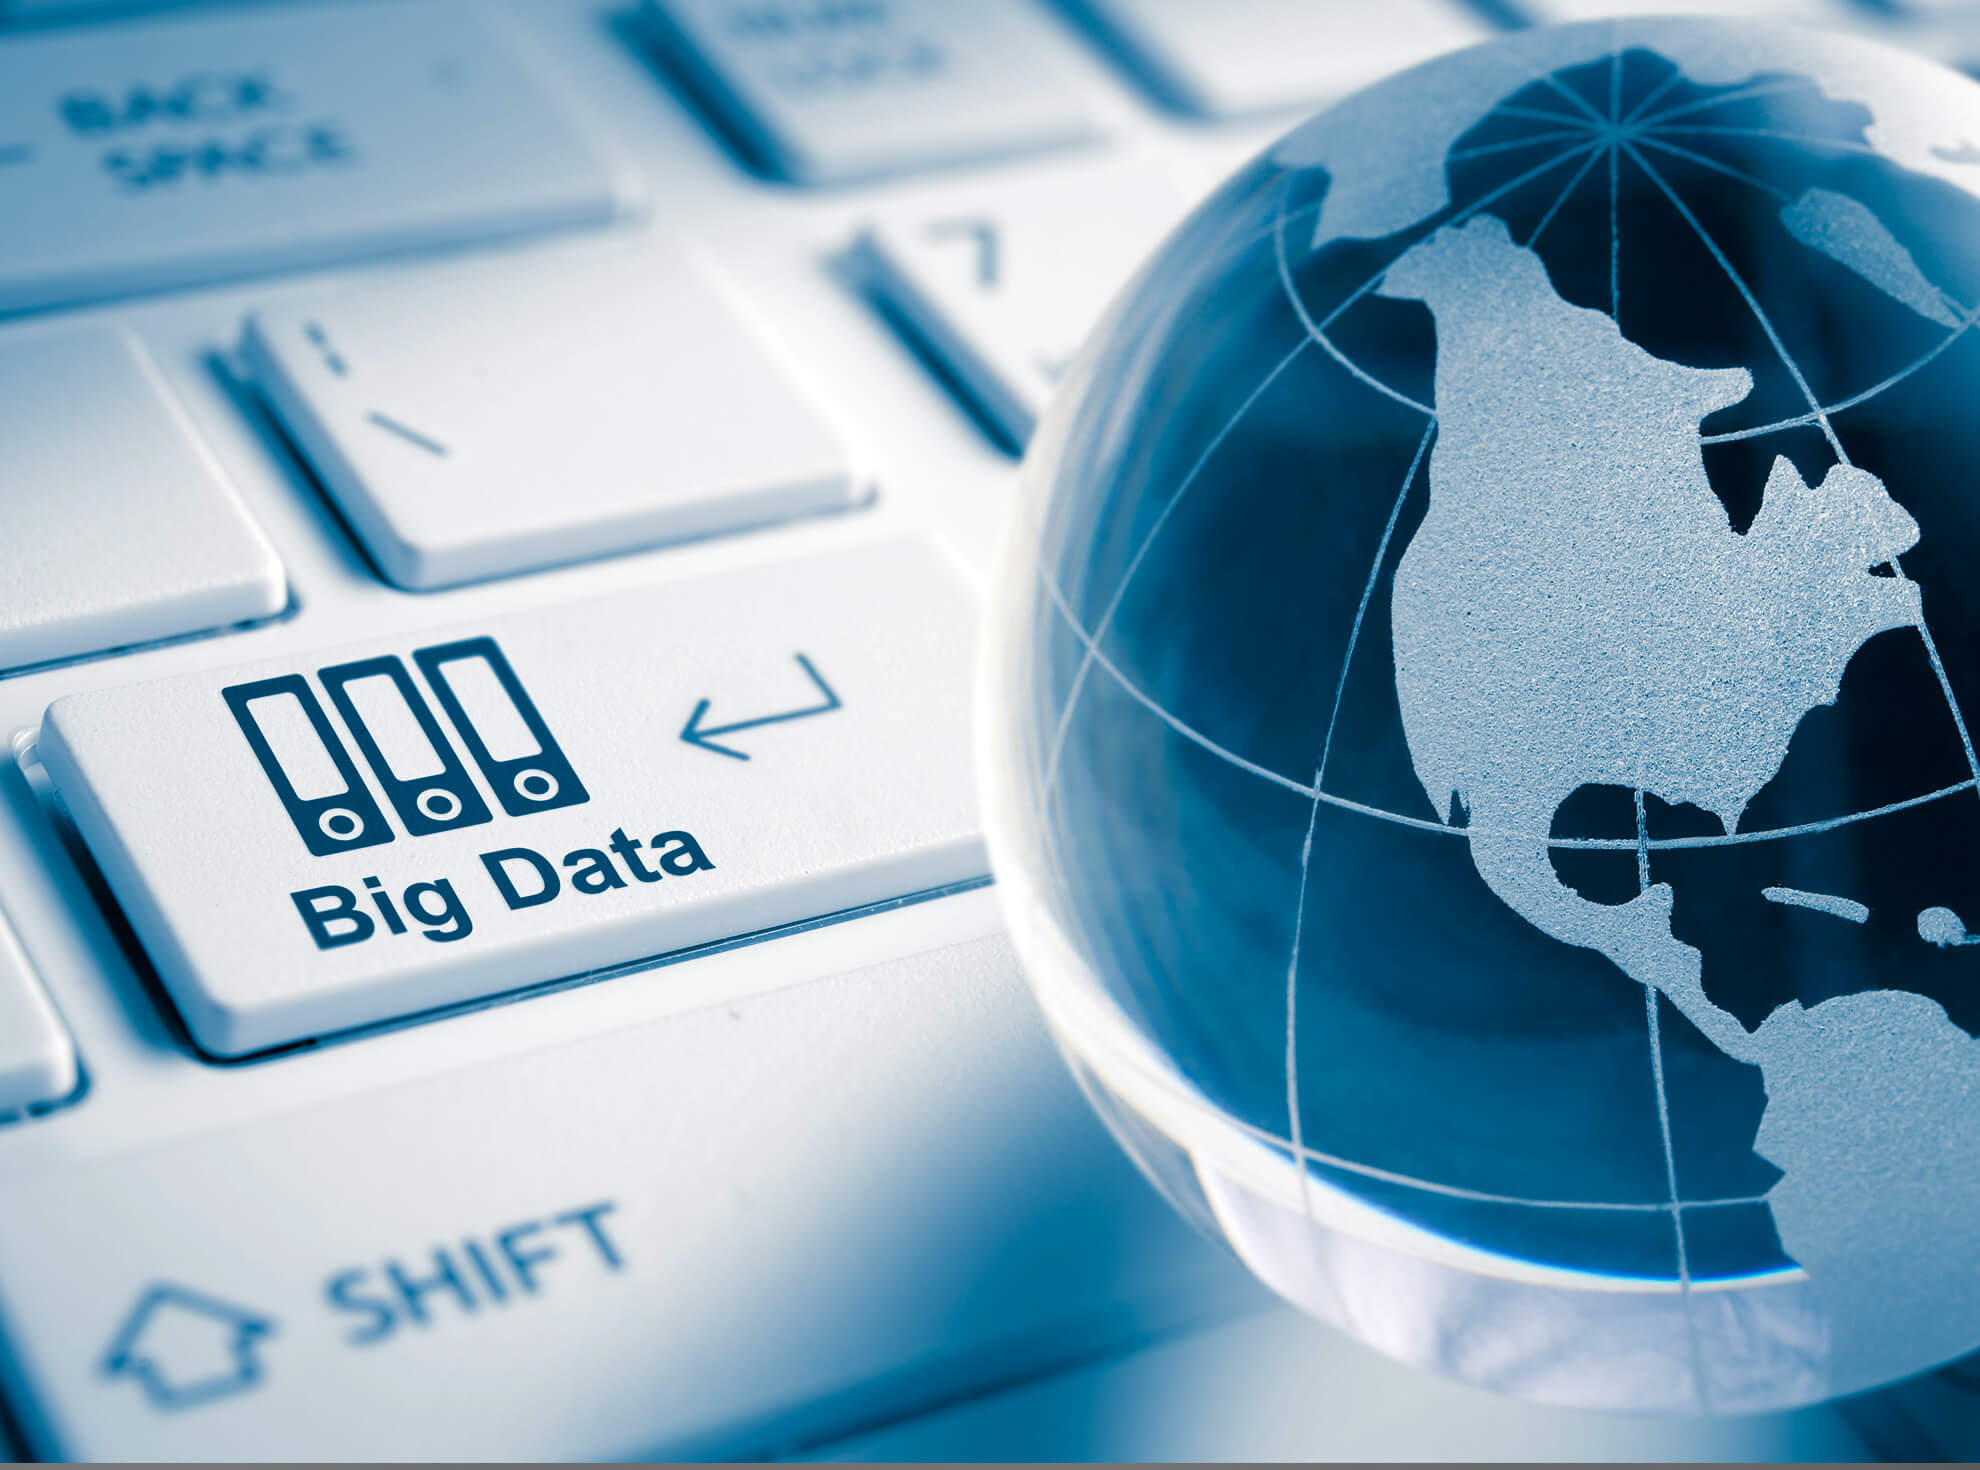 L'analisi prescrittiva, futuro dei big data